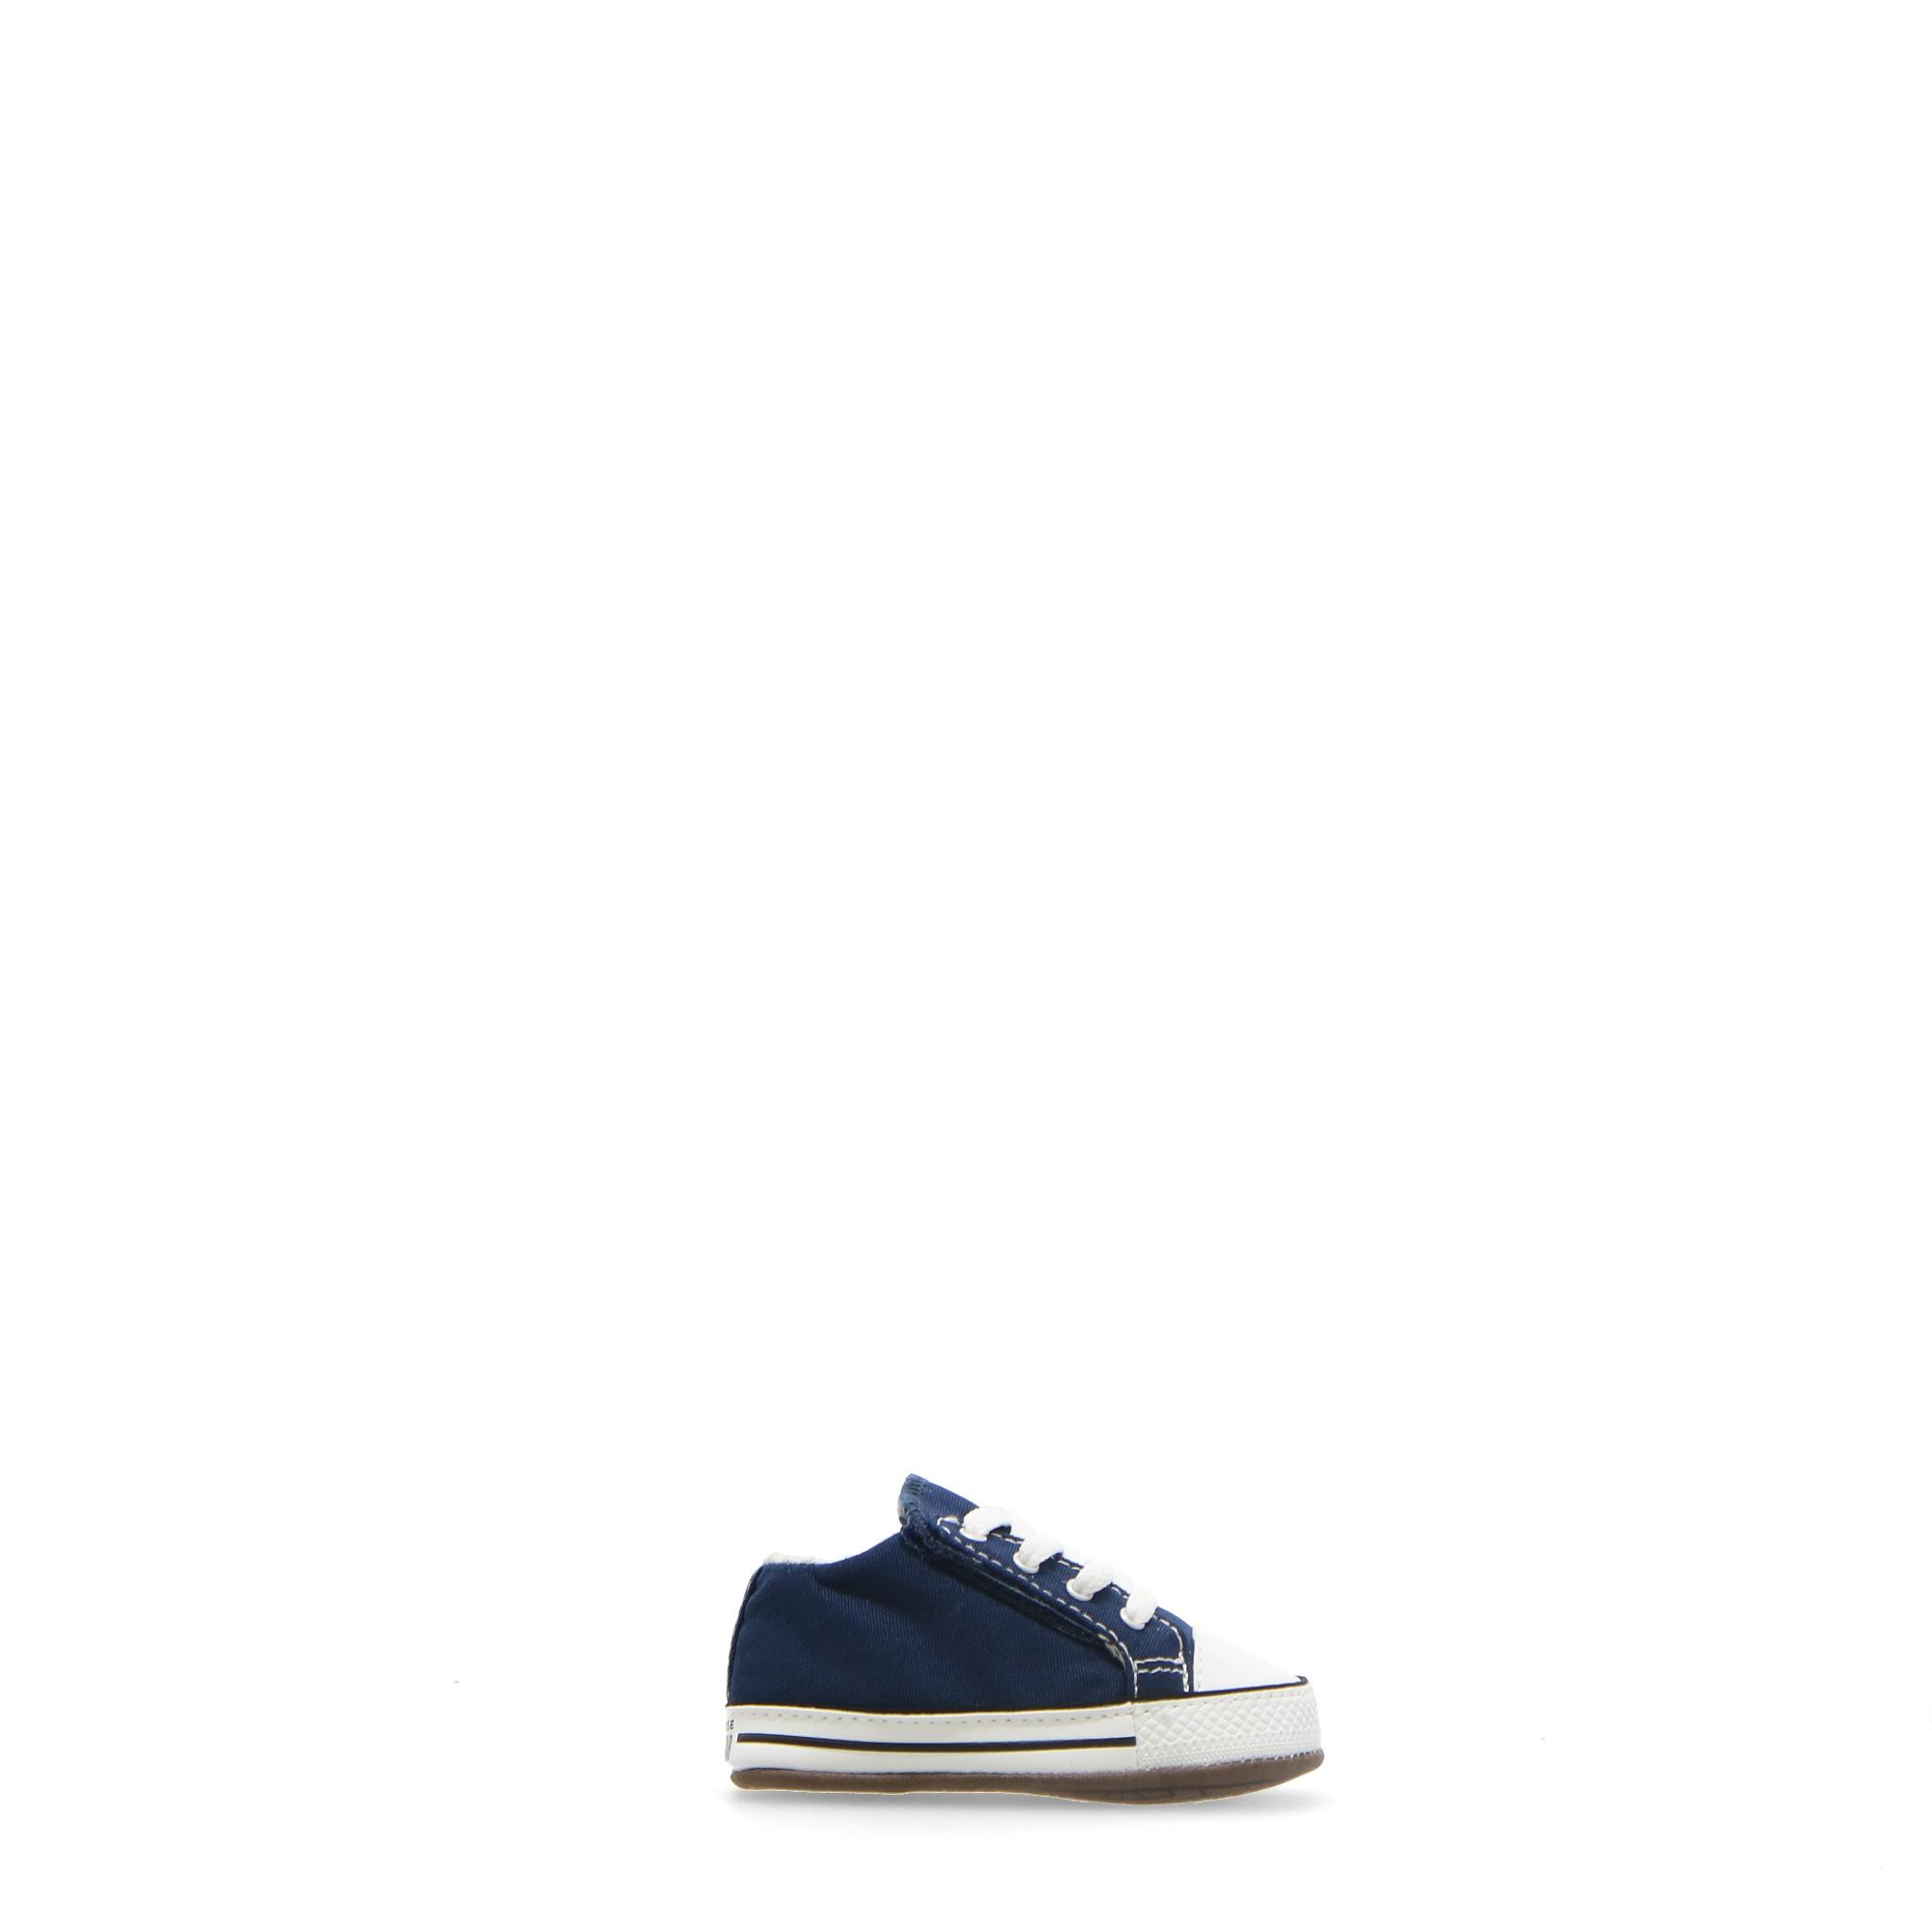 Converse Ct All Star Cribster Navy natural ivory white